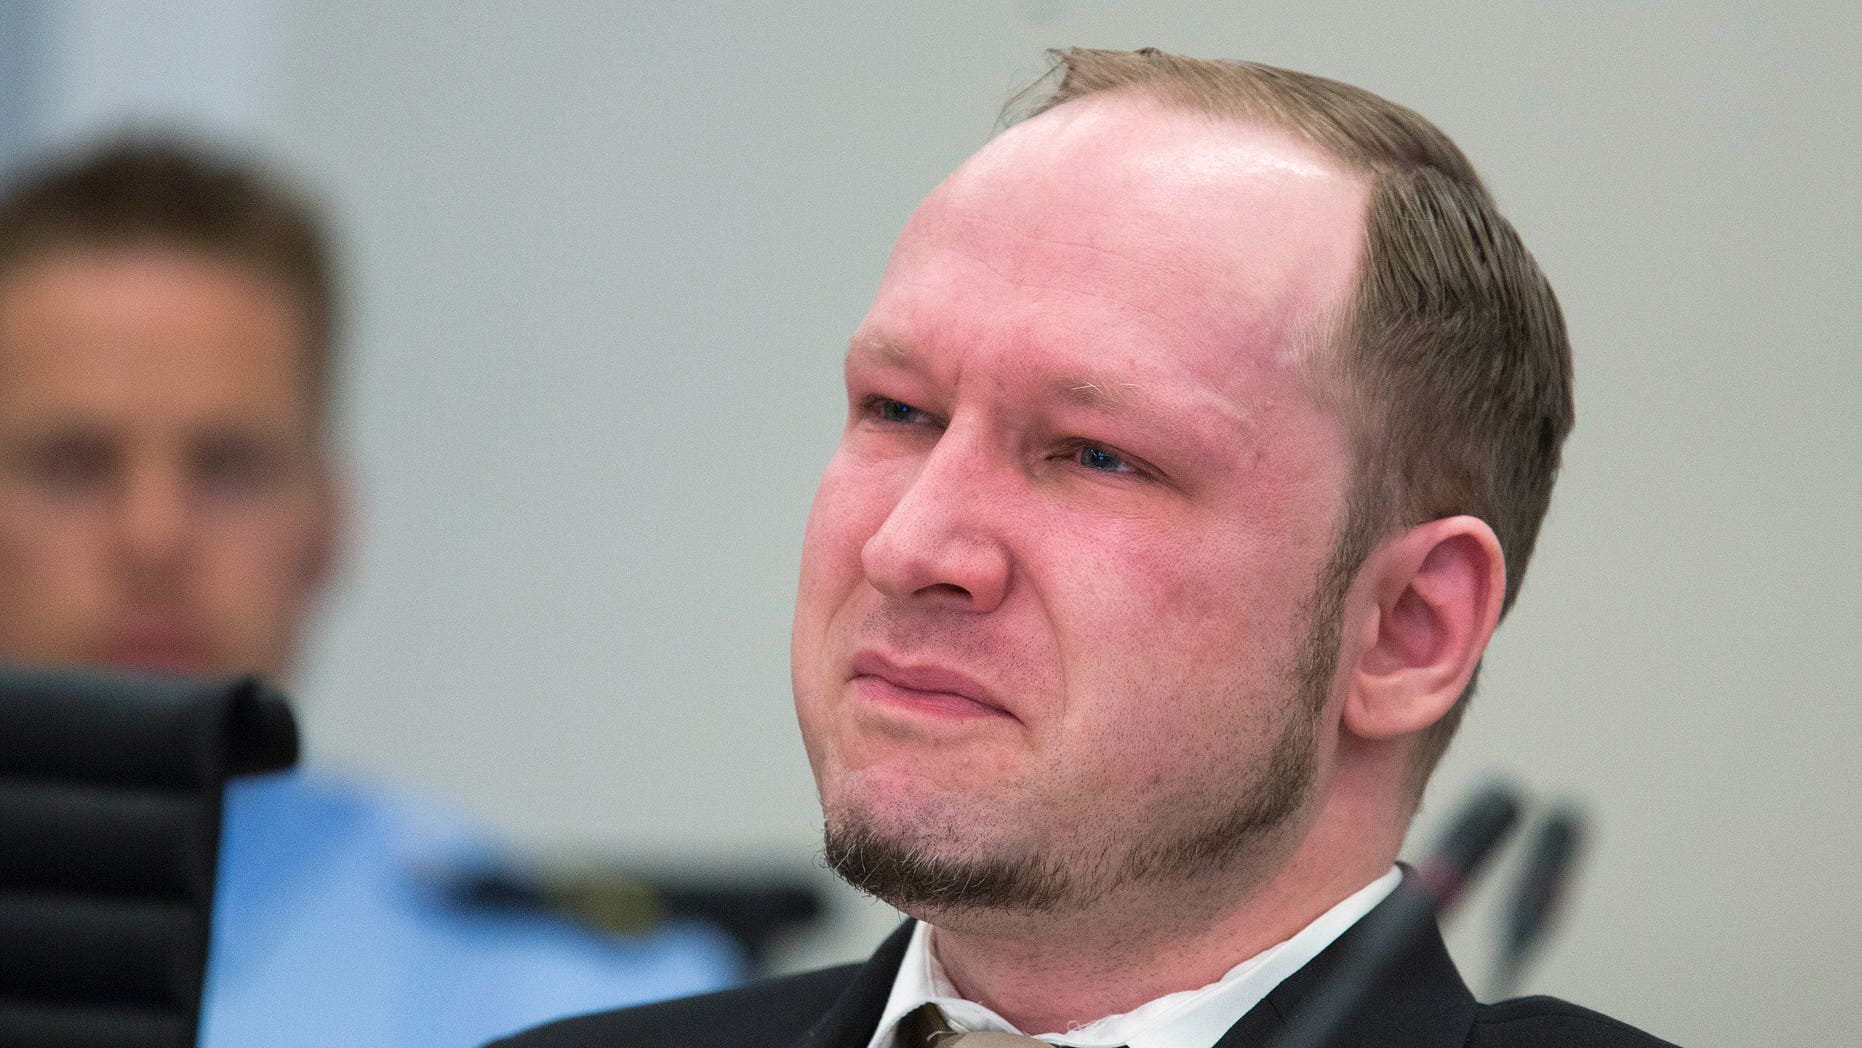 April 16, 2012: Norwegian Anders Behring Breivik, who is facing terrorism and premeditated murder charges, reacts as a video presented by the prosecution is shown in court, Oslo, Norway.